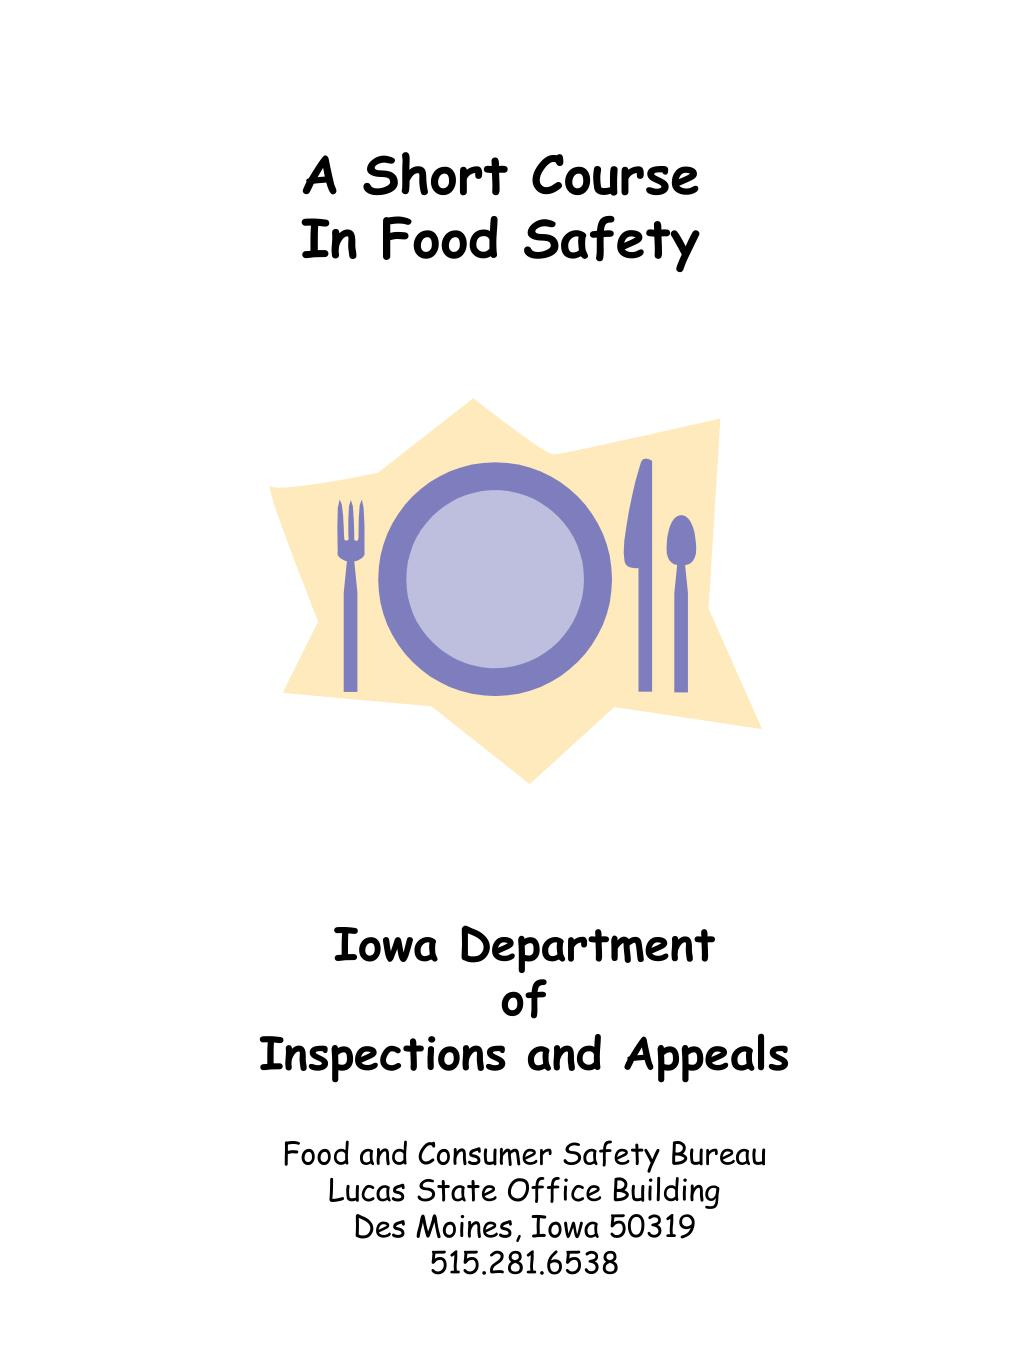 A Short Course In Food Safety